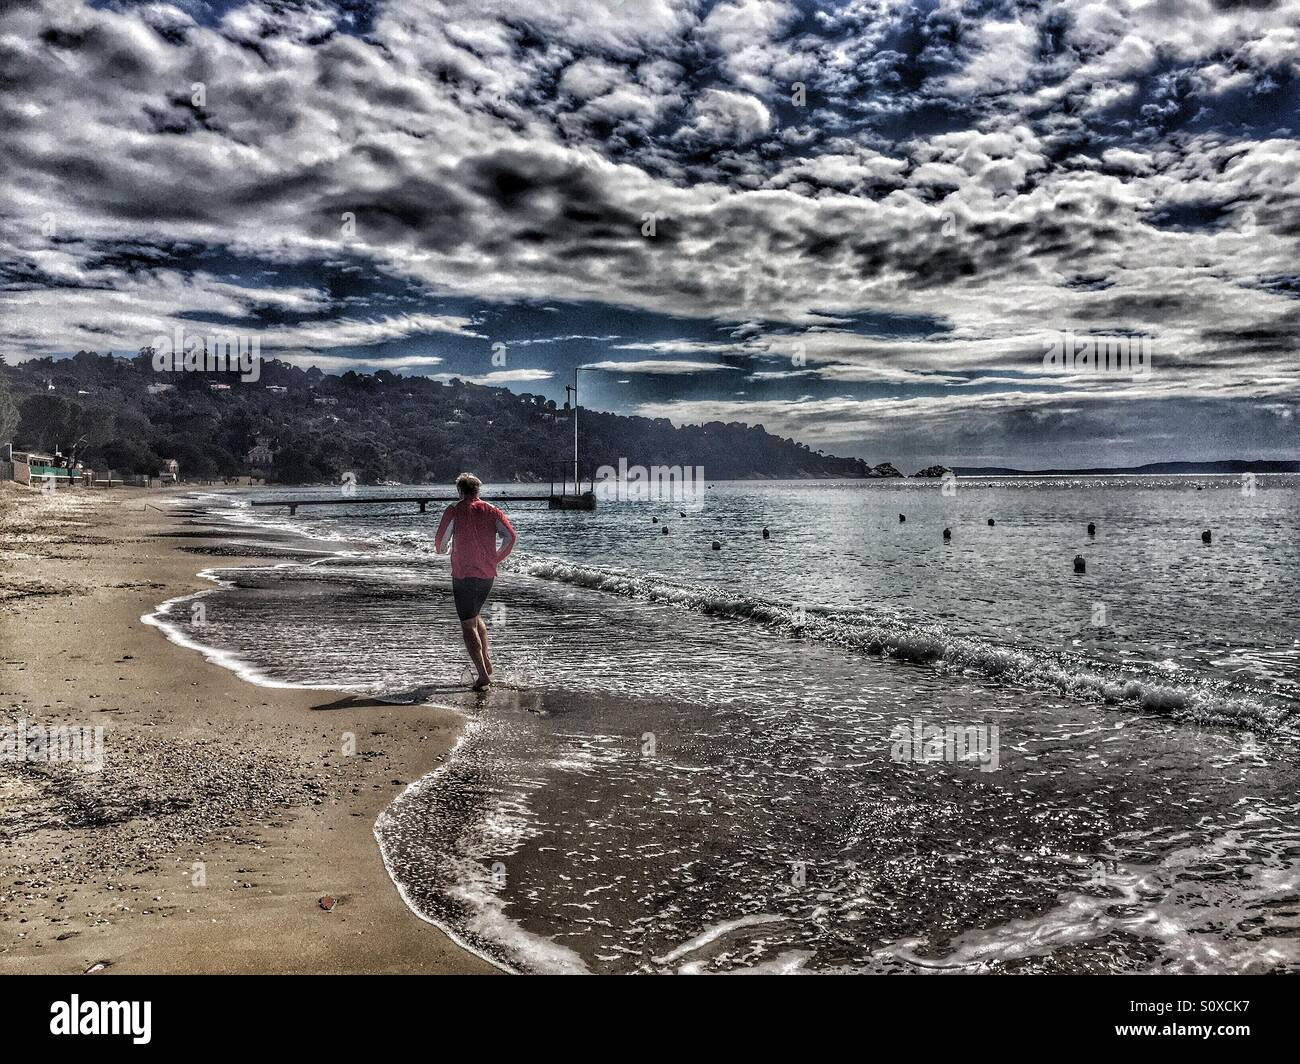 Jogging at the beach, Mediterranean Sea,Côte d'Azur, France Stock Photo